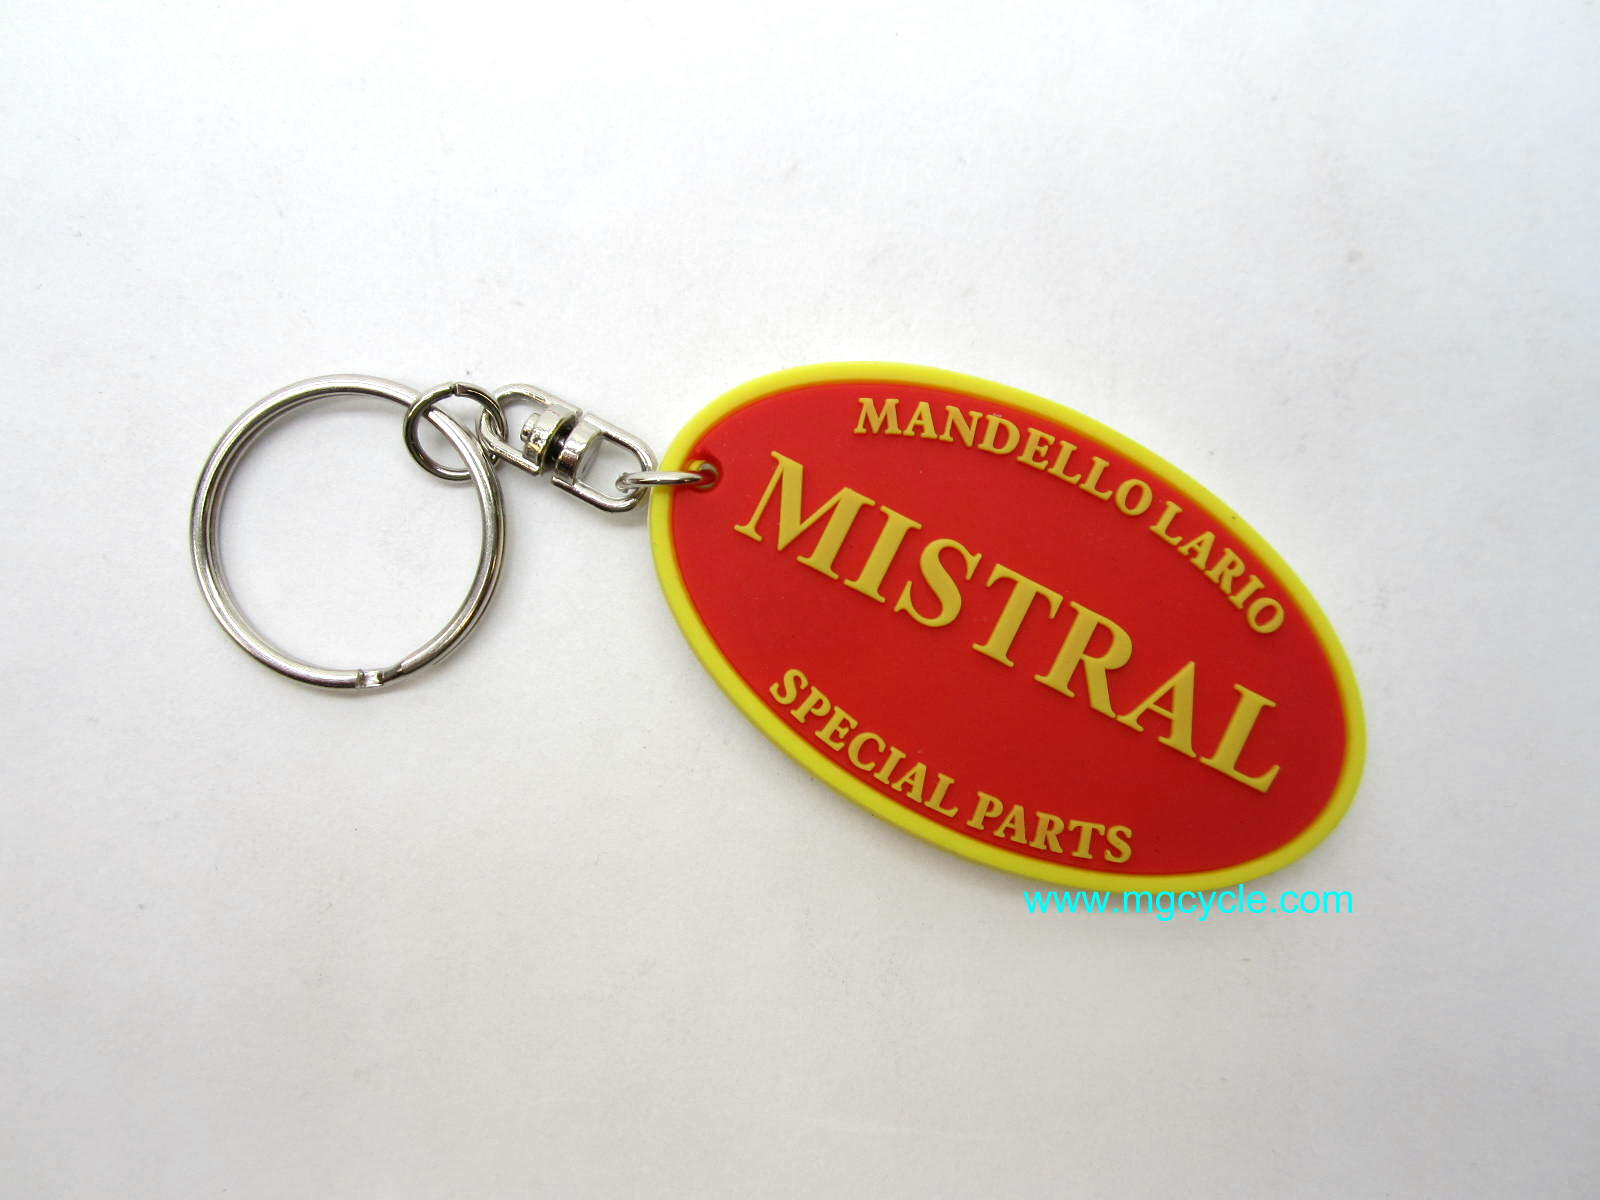 Mistral rubber key chain fob